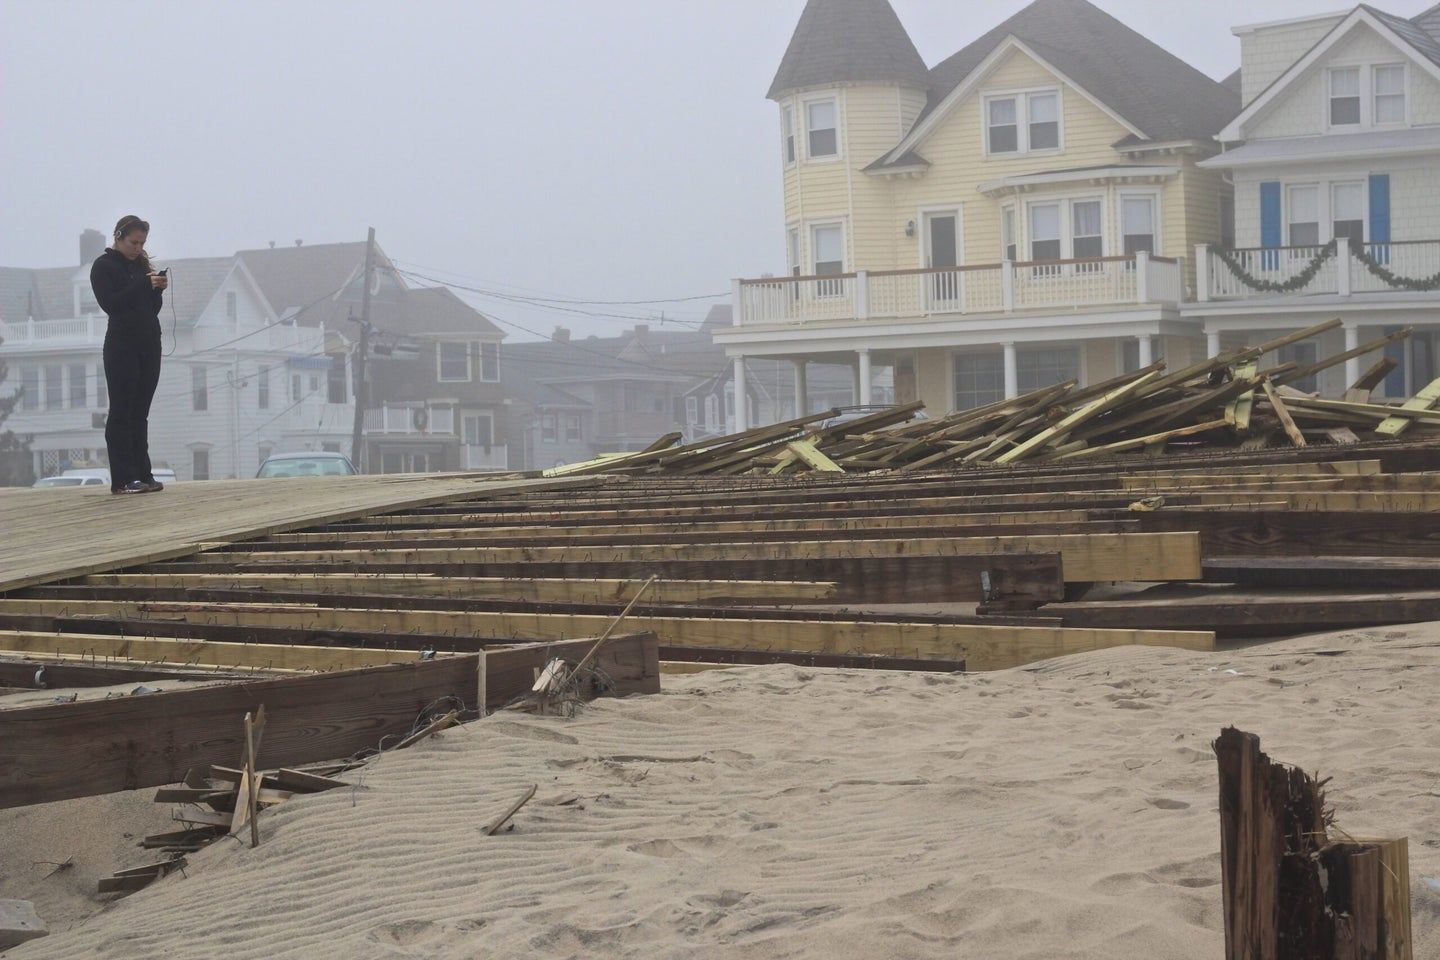 Even after Hurricane Sandy, many people wouldn't prepare before a future storm